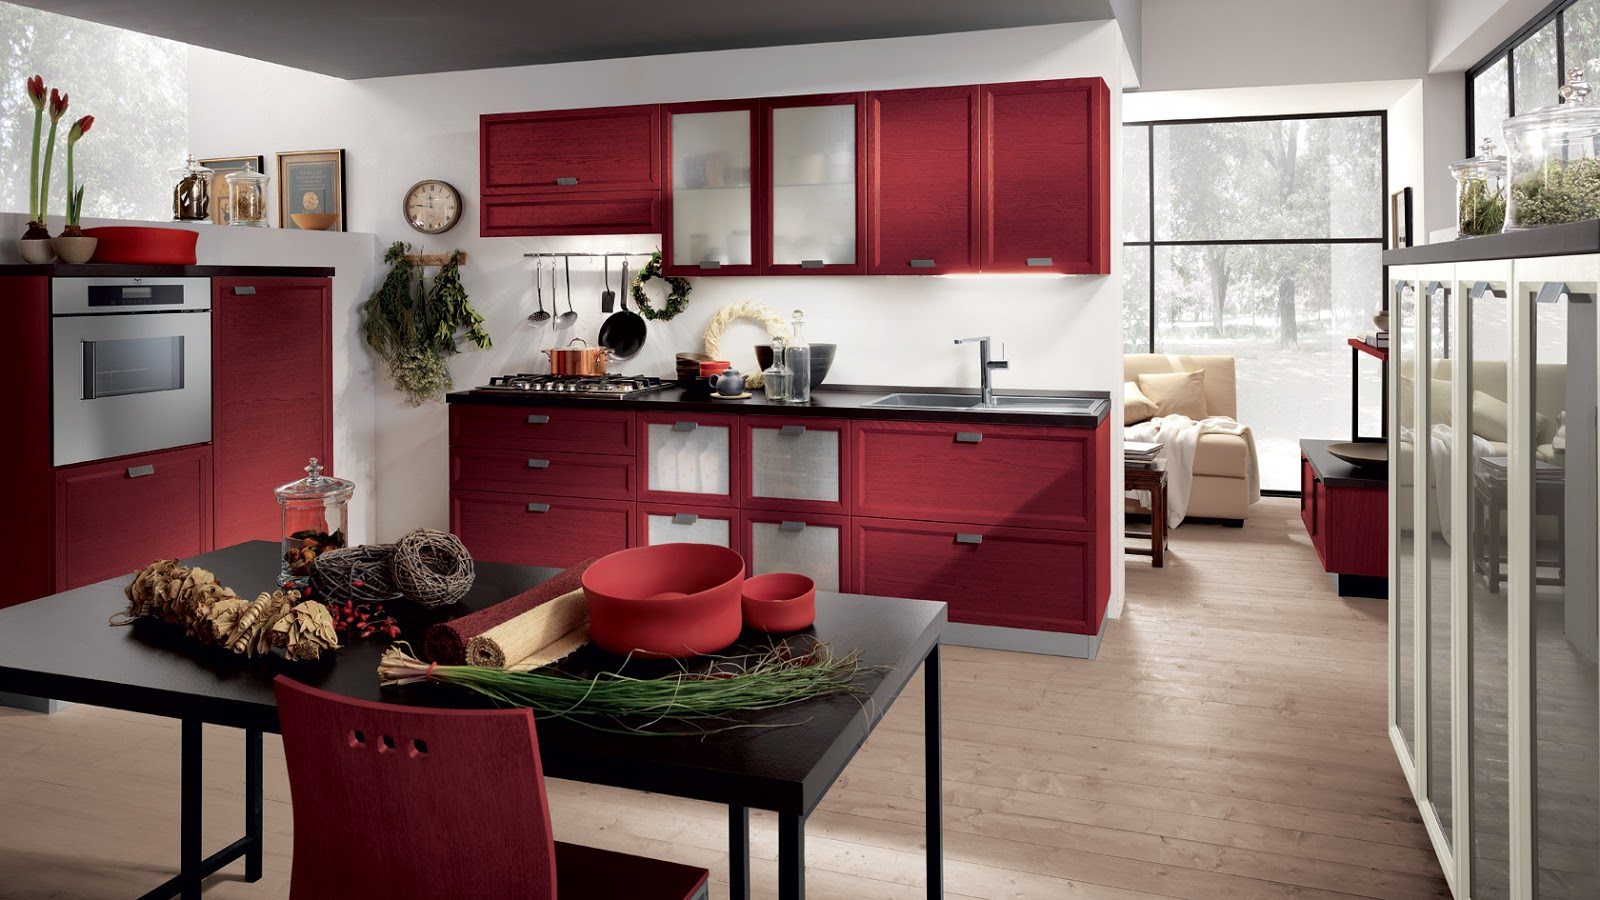 Atelier modular kitchens - In And Around Chennai There Is Lots Of Modular Kitchen Showroom Are There Most Of Them Are Moving Normal Kitchen To Modular Kitchen